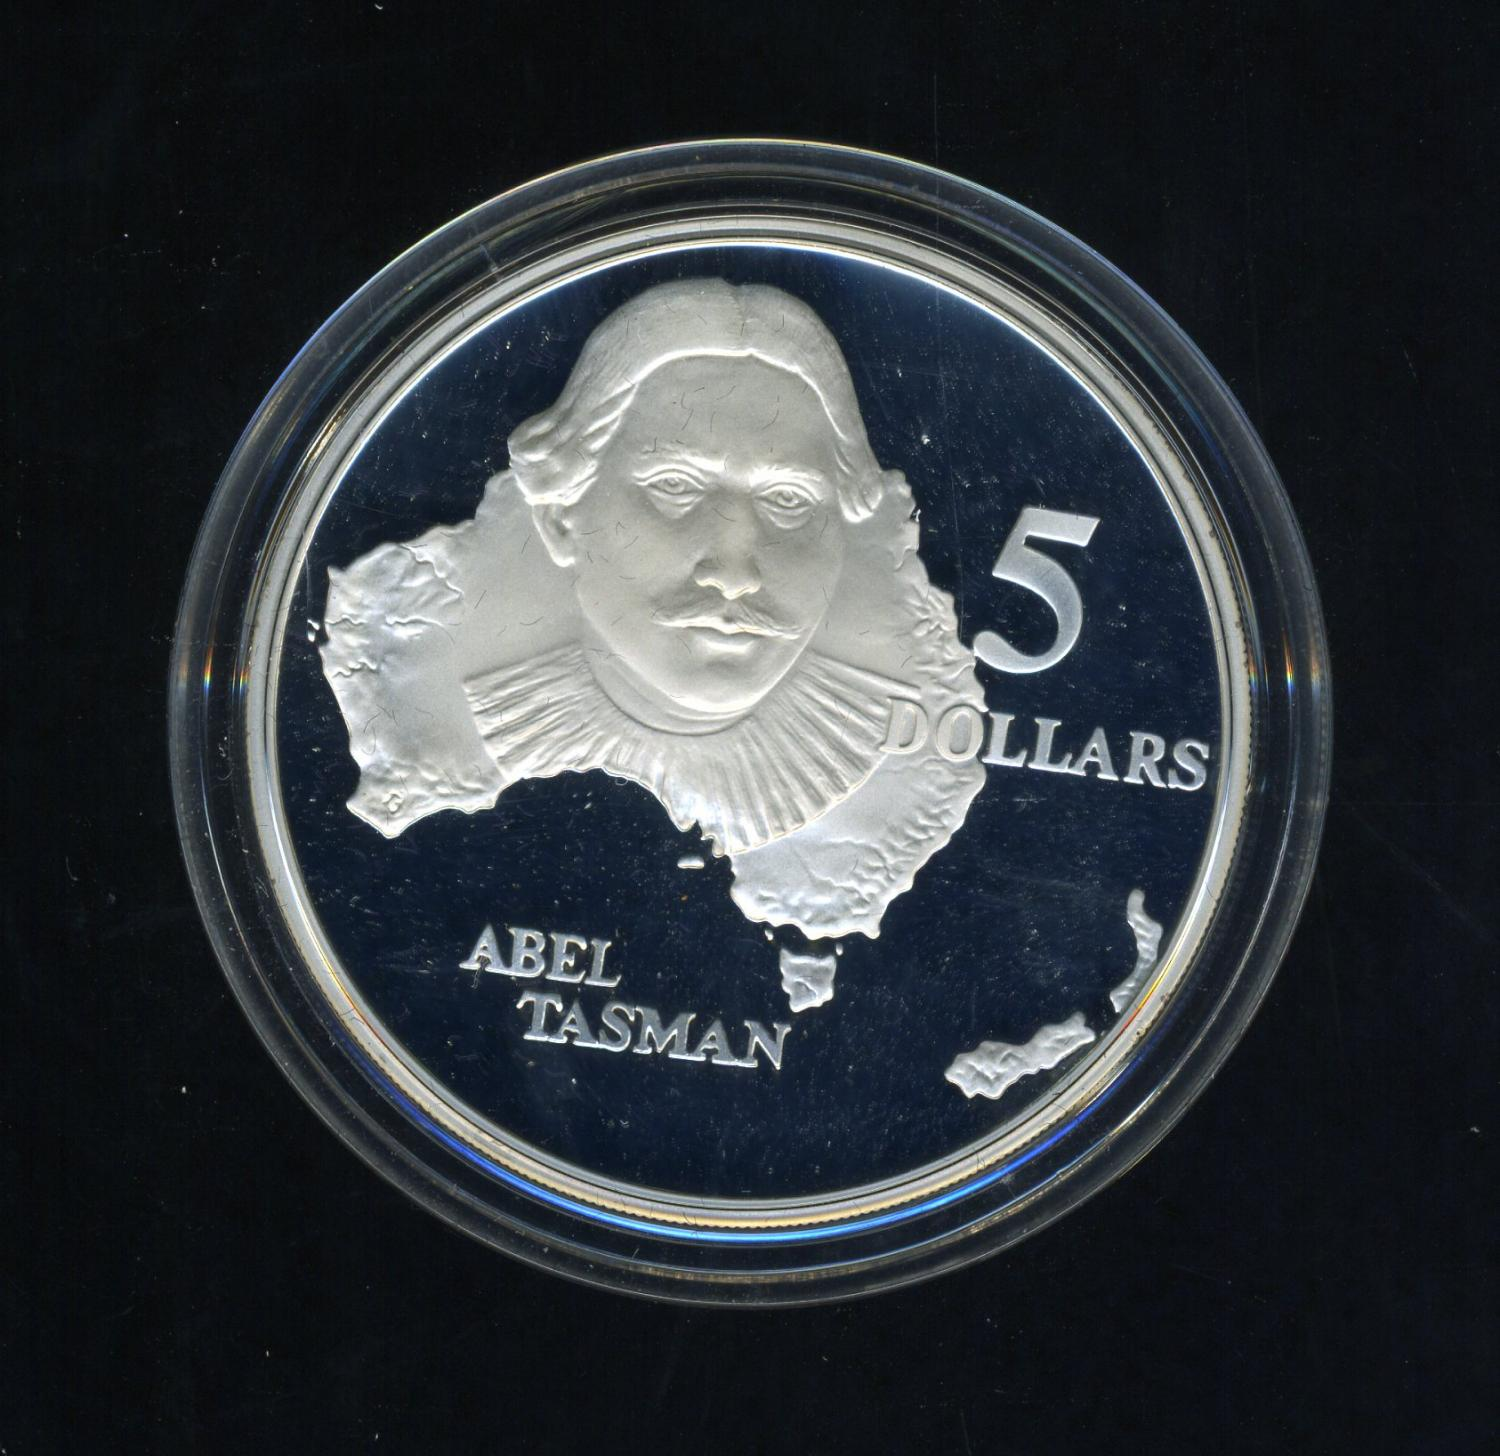 Thumbnail for 1993 Australian $5 Silver Coin from Masterpieces in Silver Set - Abel Tasman.  The Coin is Sterling Silver and contains over 1oz of Pure Silver.